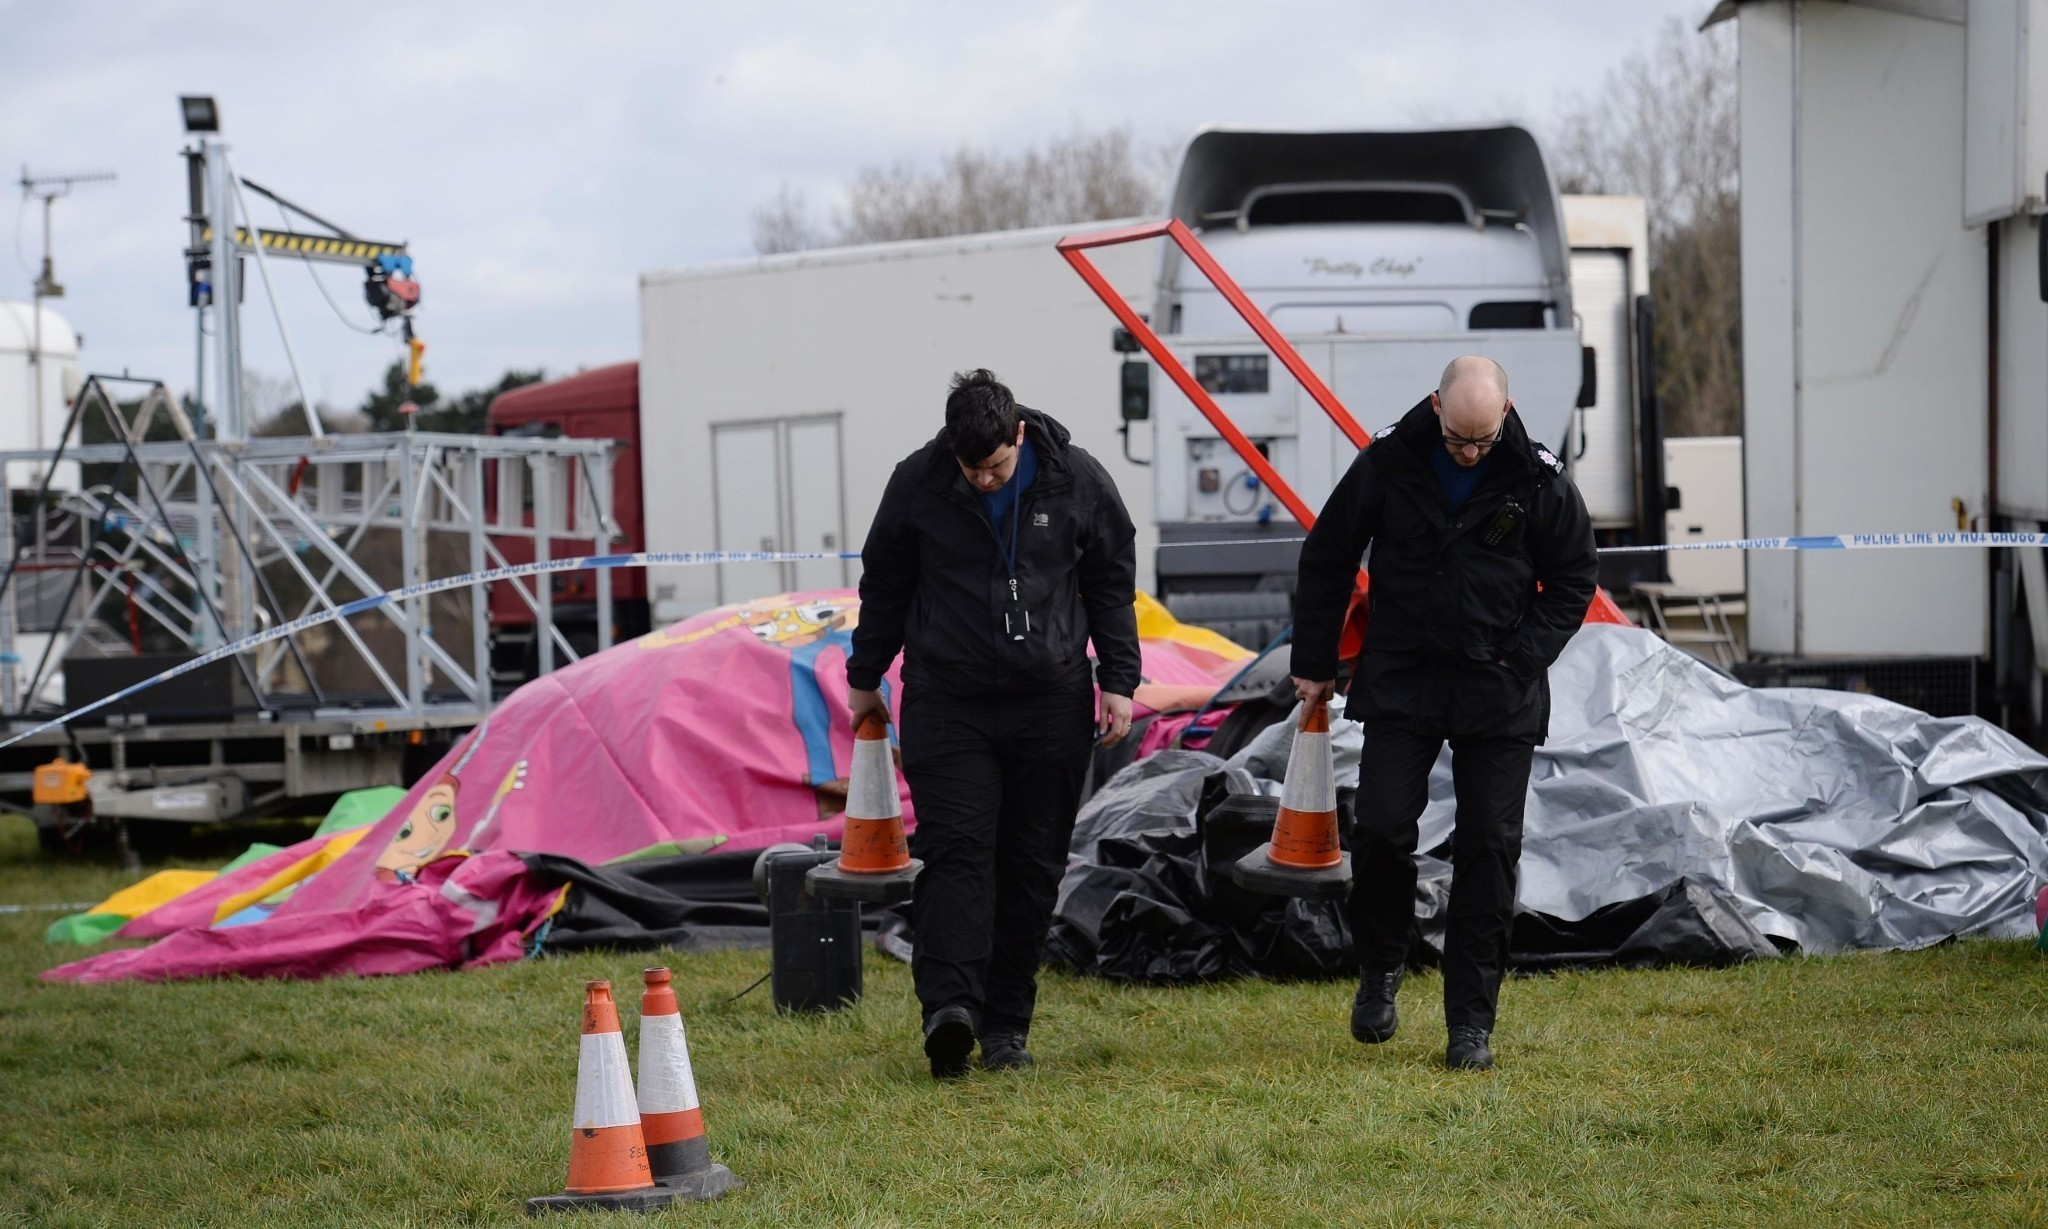 Police investigate girl's death on bouncy castle at Easter fair